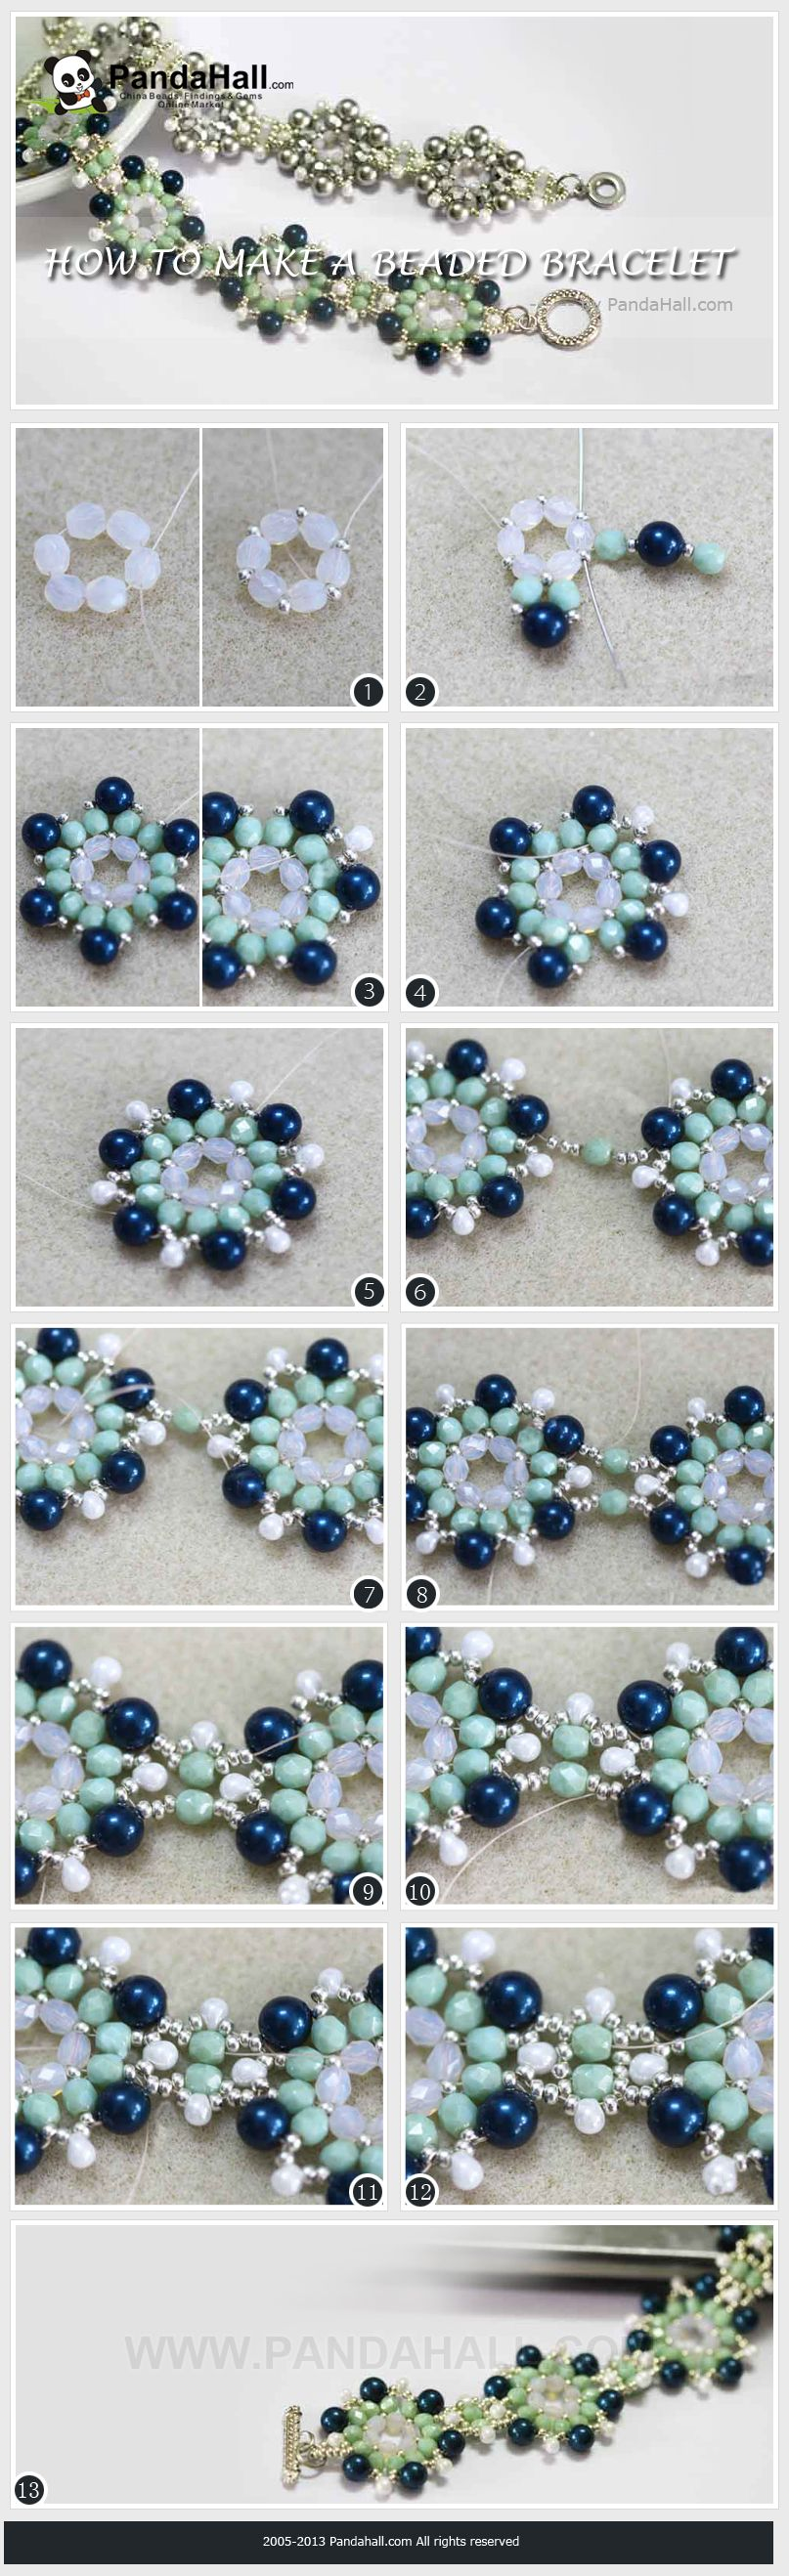 How to keep your old jewelry looking like new bracelets tutorials how to keep your old jewelry looking like new flower braceletdiy solutioingenieria Choice Image